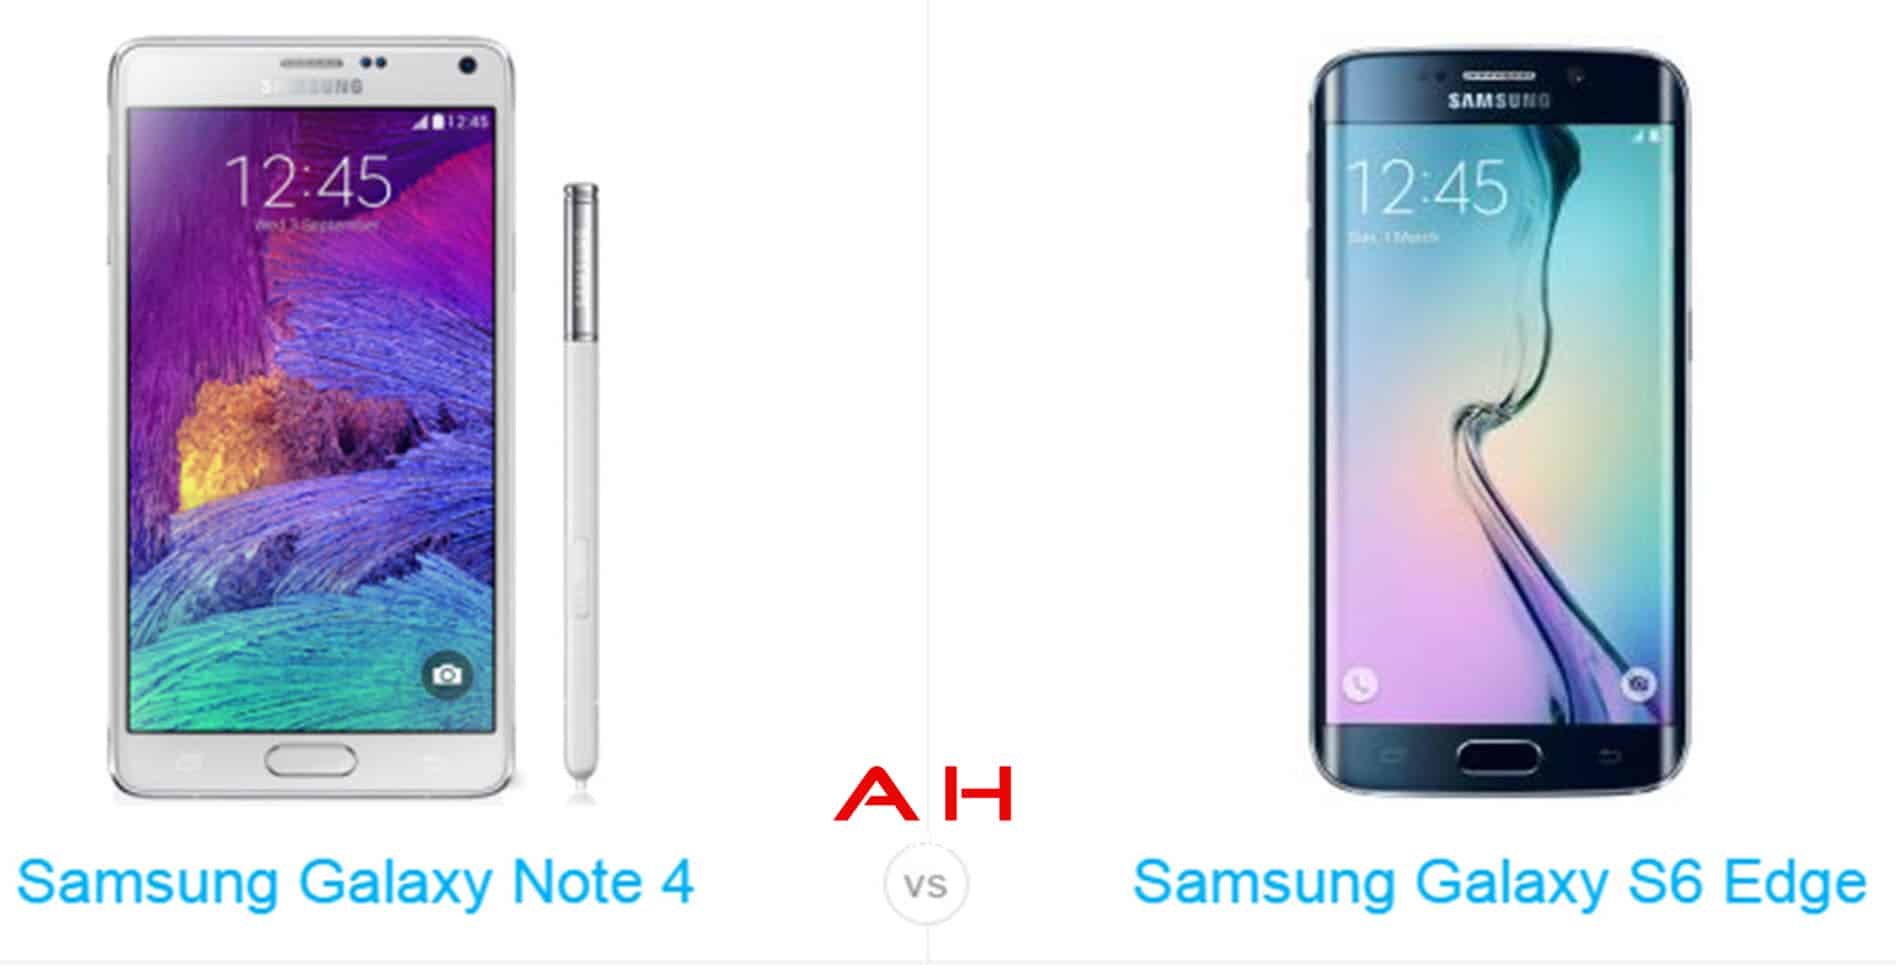 Galaxy s6 Edge vs Galaxy Note 4 cam AH